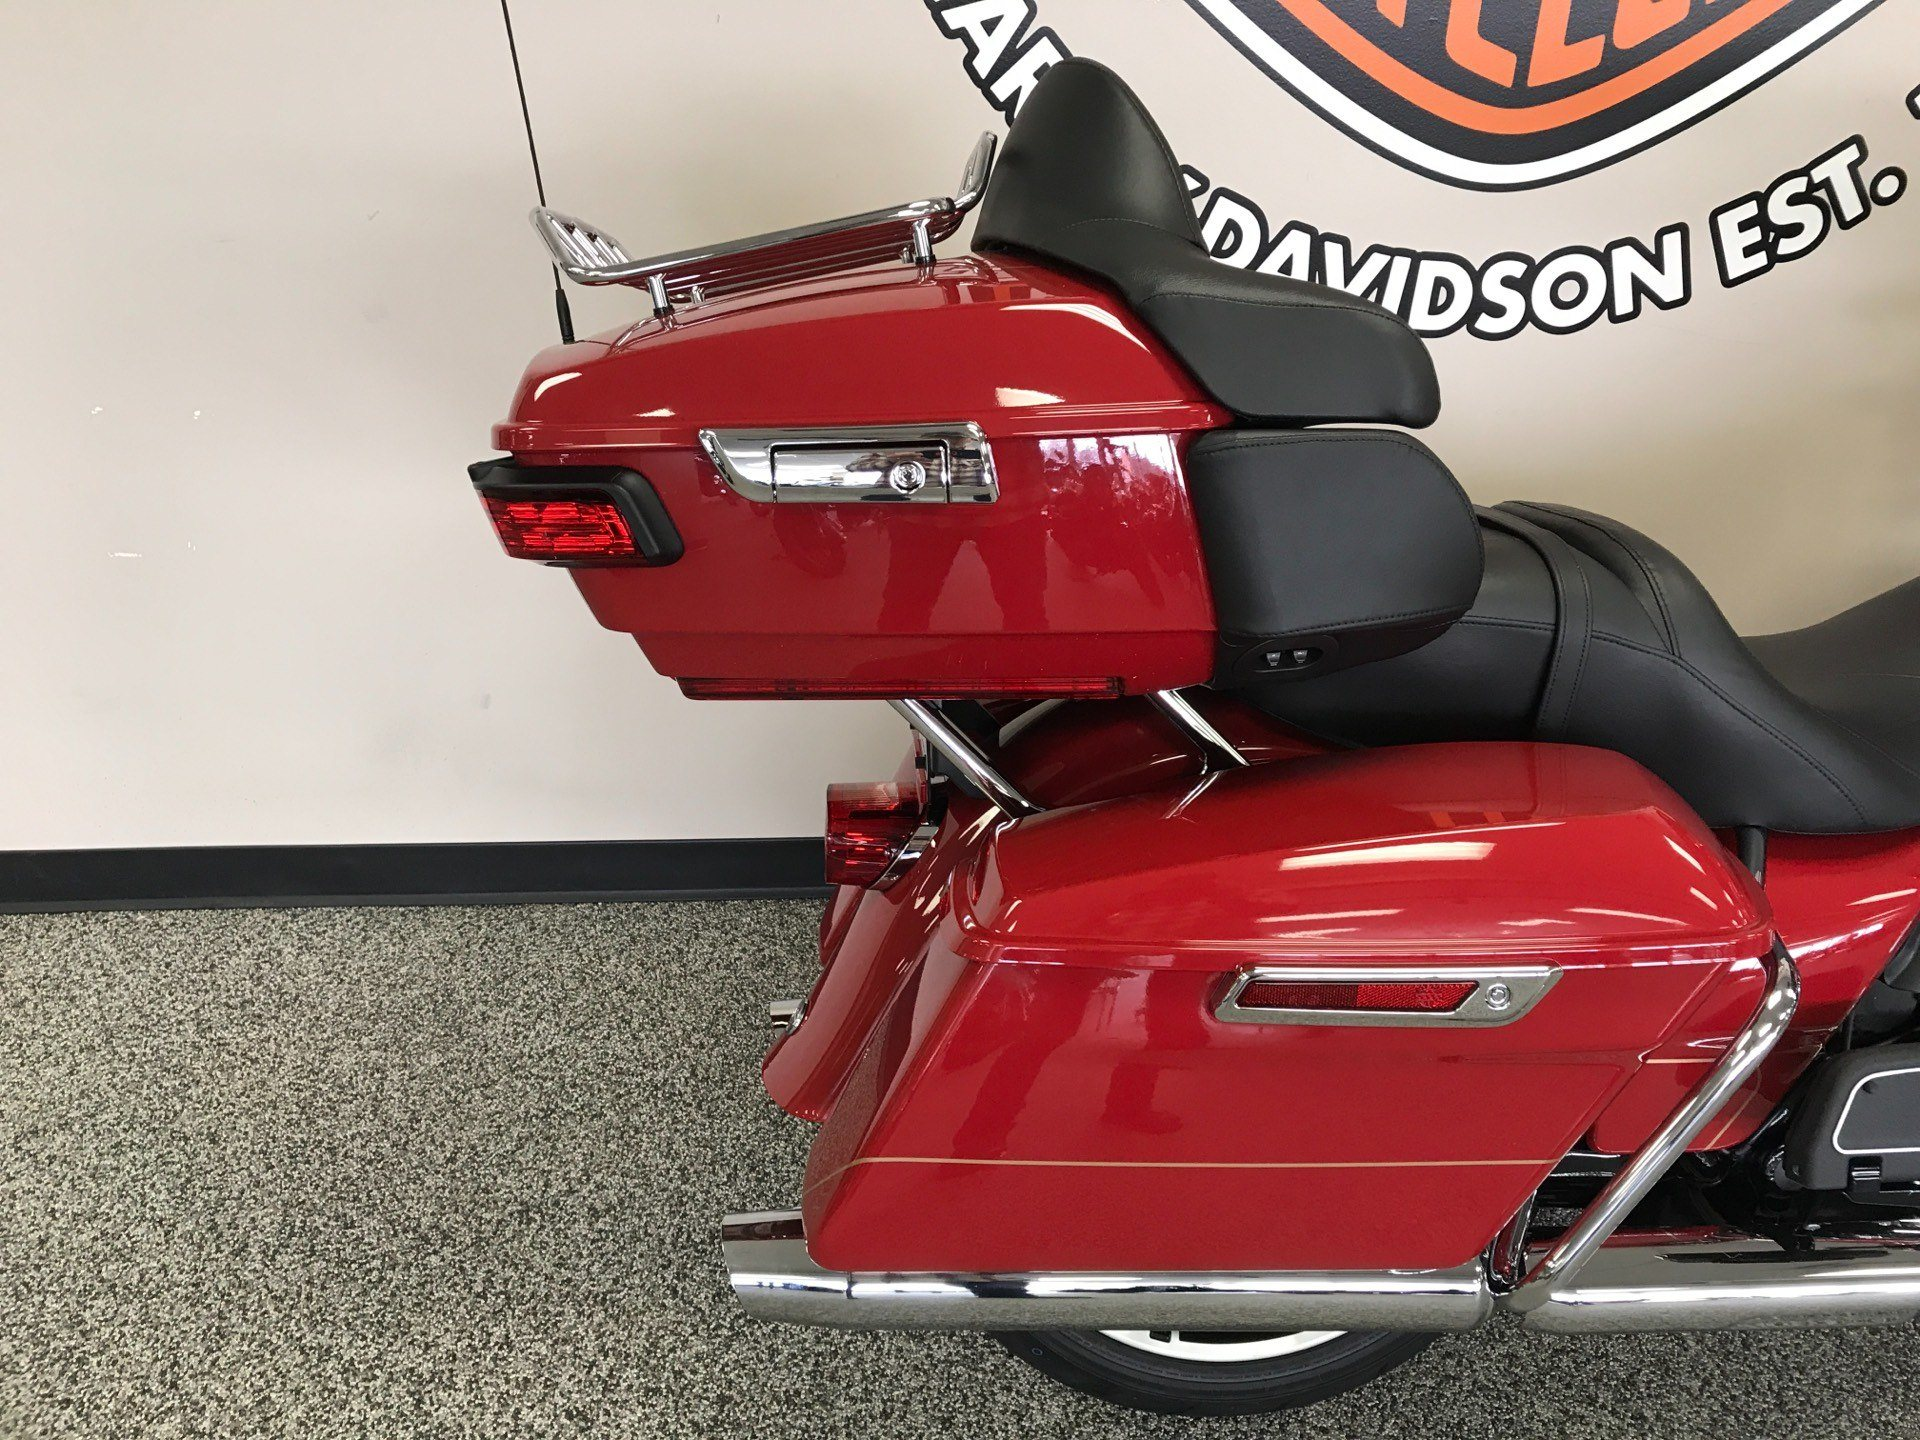 2020 Harley-Davidson ULTRA LIMITED FIREFIGHTER EDITION in Knoxville, Tennessee - Photo 3